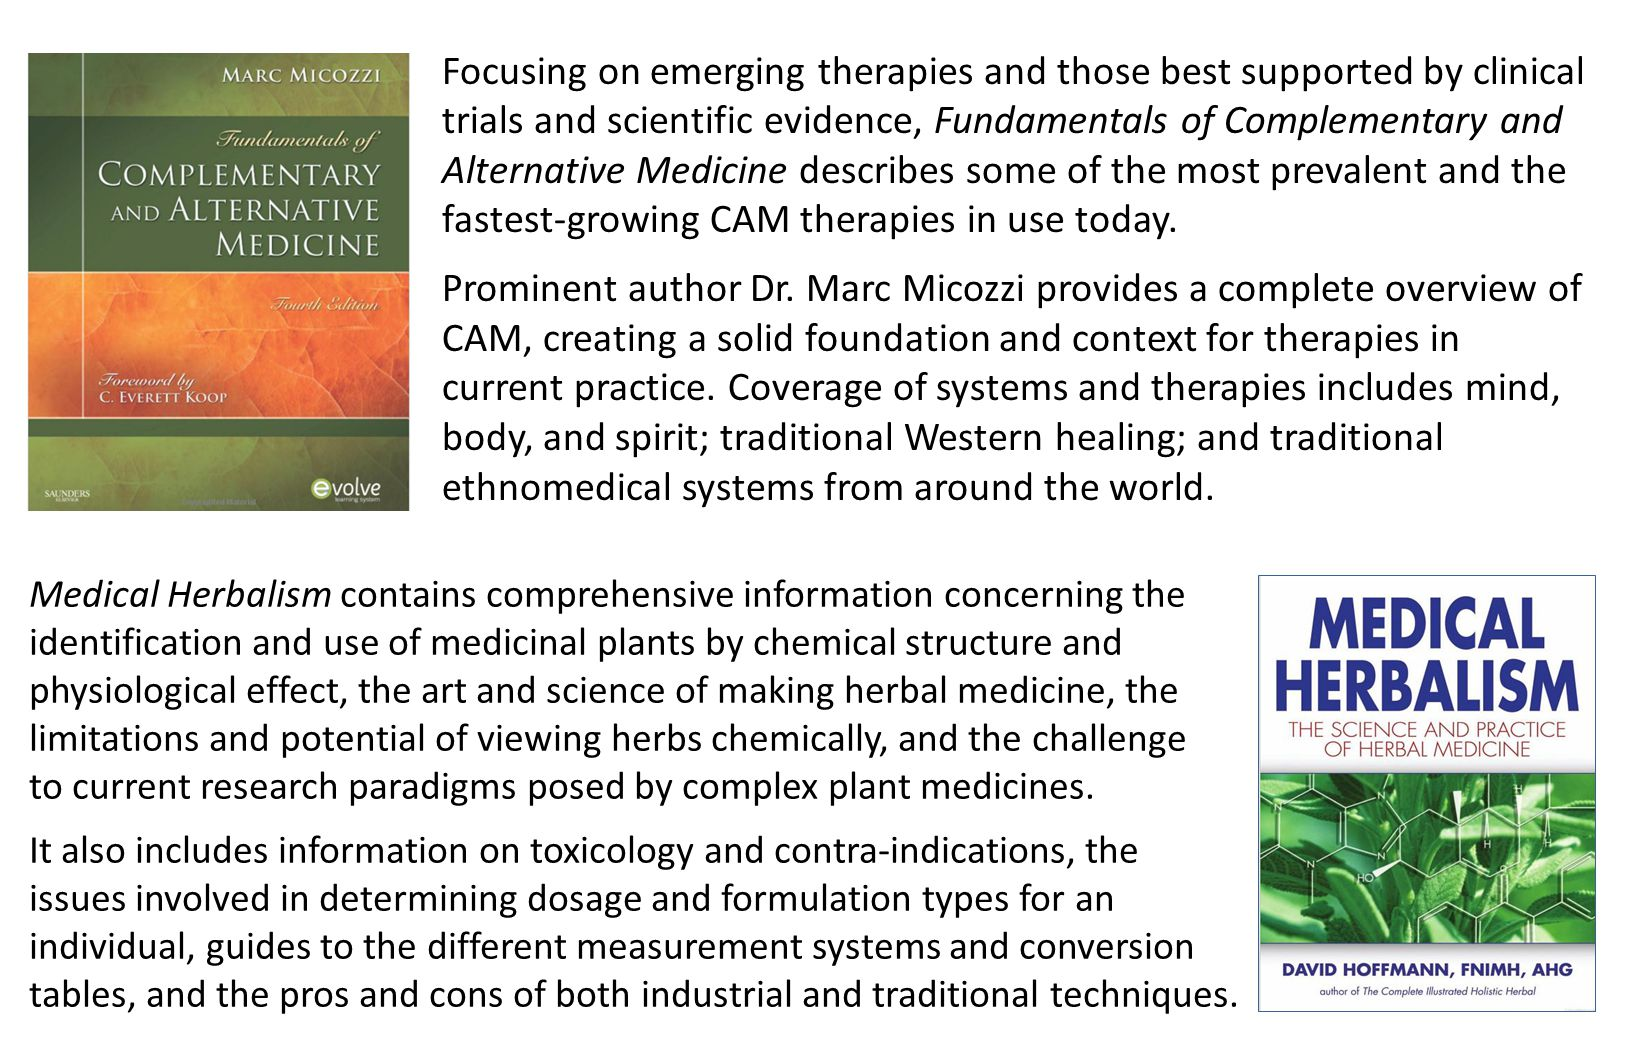 Focusing on emerging therapies and those best supported by clinical trials and scientific evidence, Fundamentals of Complementary and Alternative Medicine describes some of the most prevalent and the fastest-growing CAM therapies in use today.